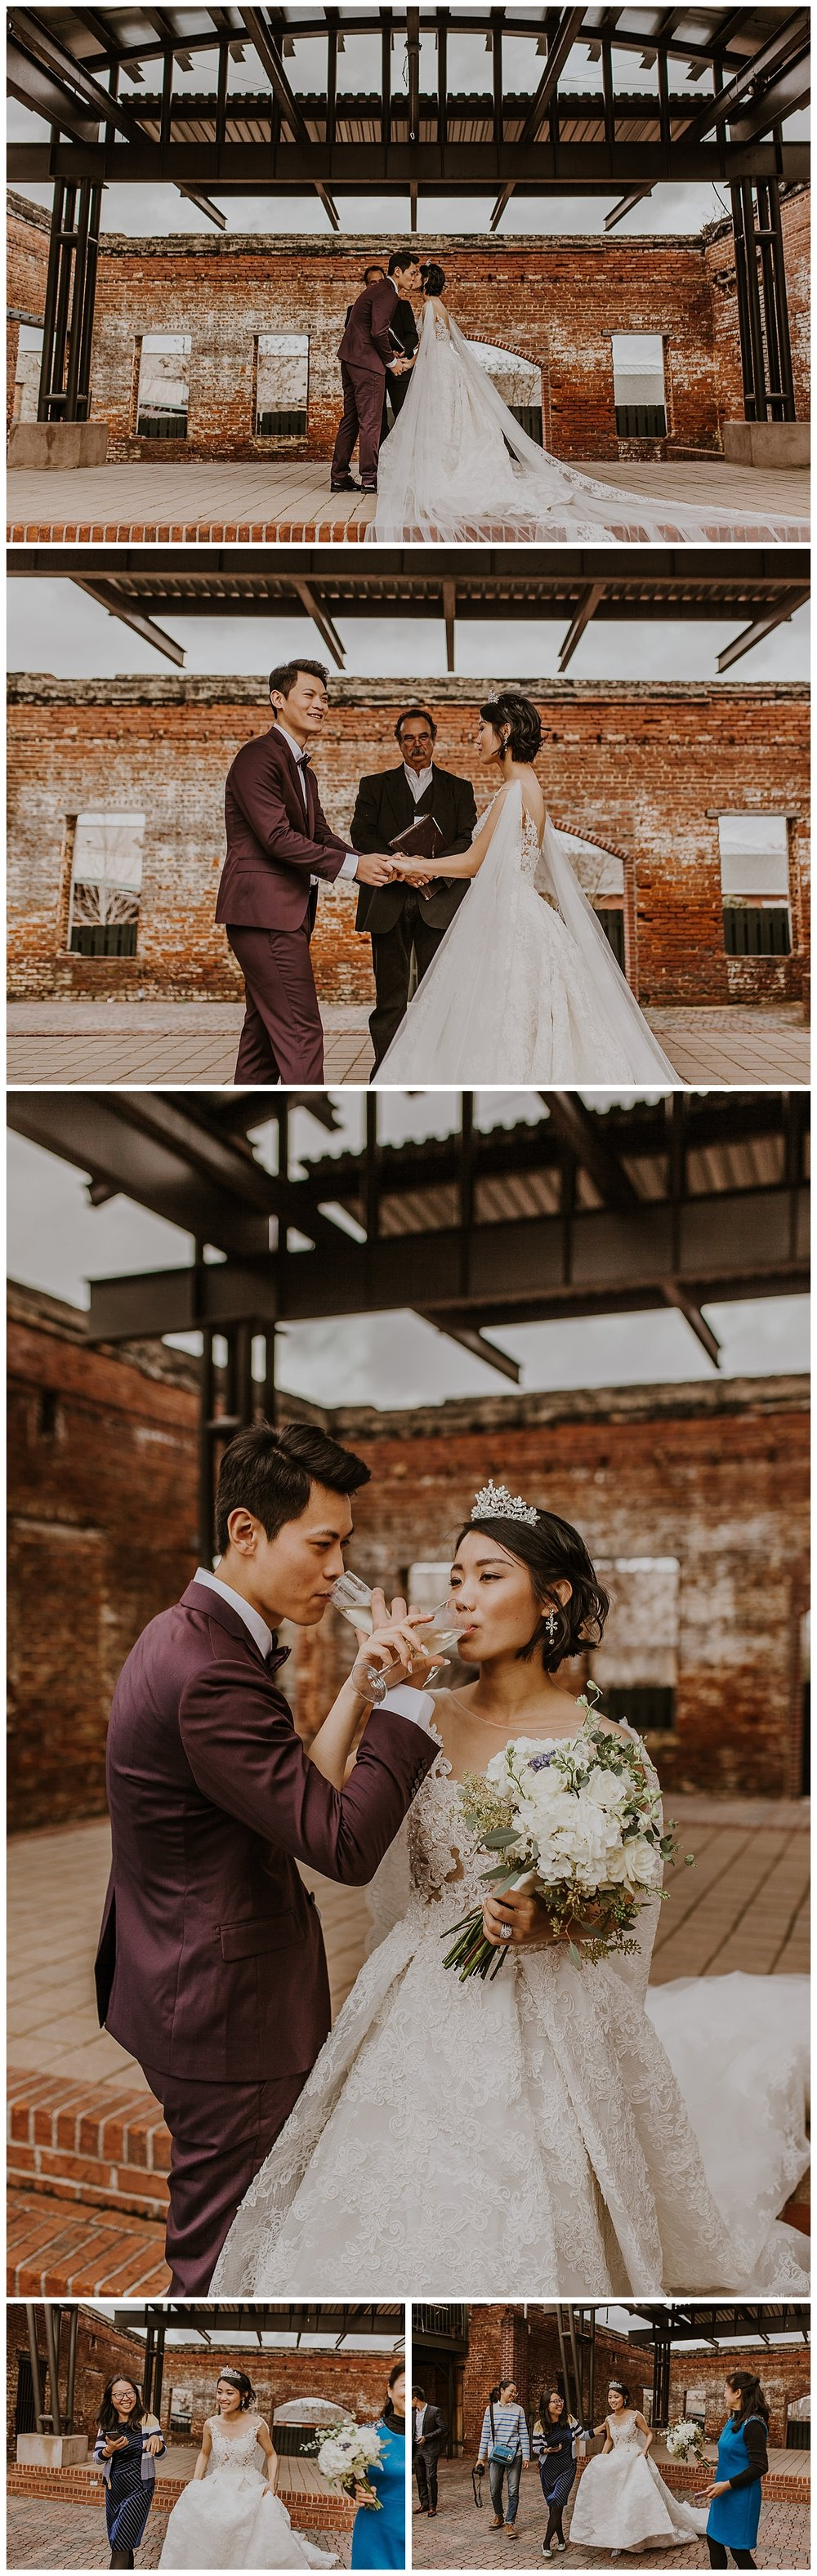 DOUGLASVILLE_GEORGIA_WEDDING_PHOTOGRAPHER_ELOPEMENT_ATLANTA_NATURAL_LIGHT_MOODY_SUNNY_0007.jpg